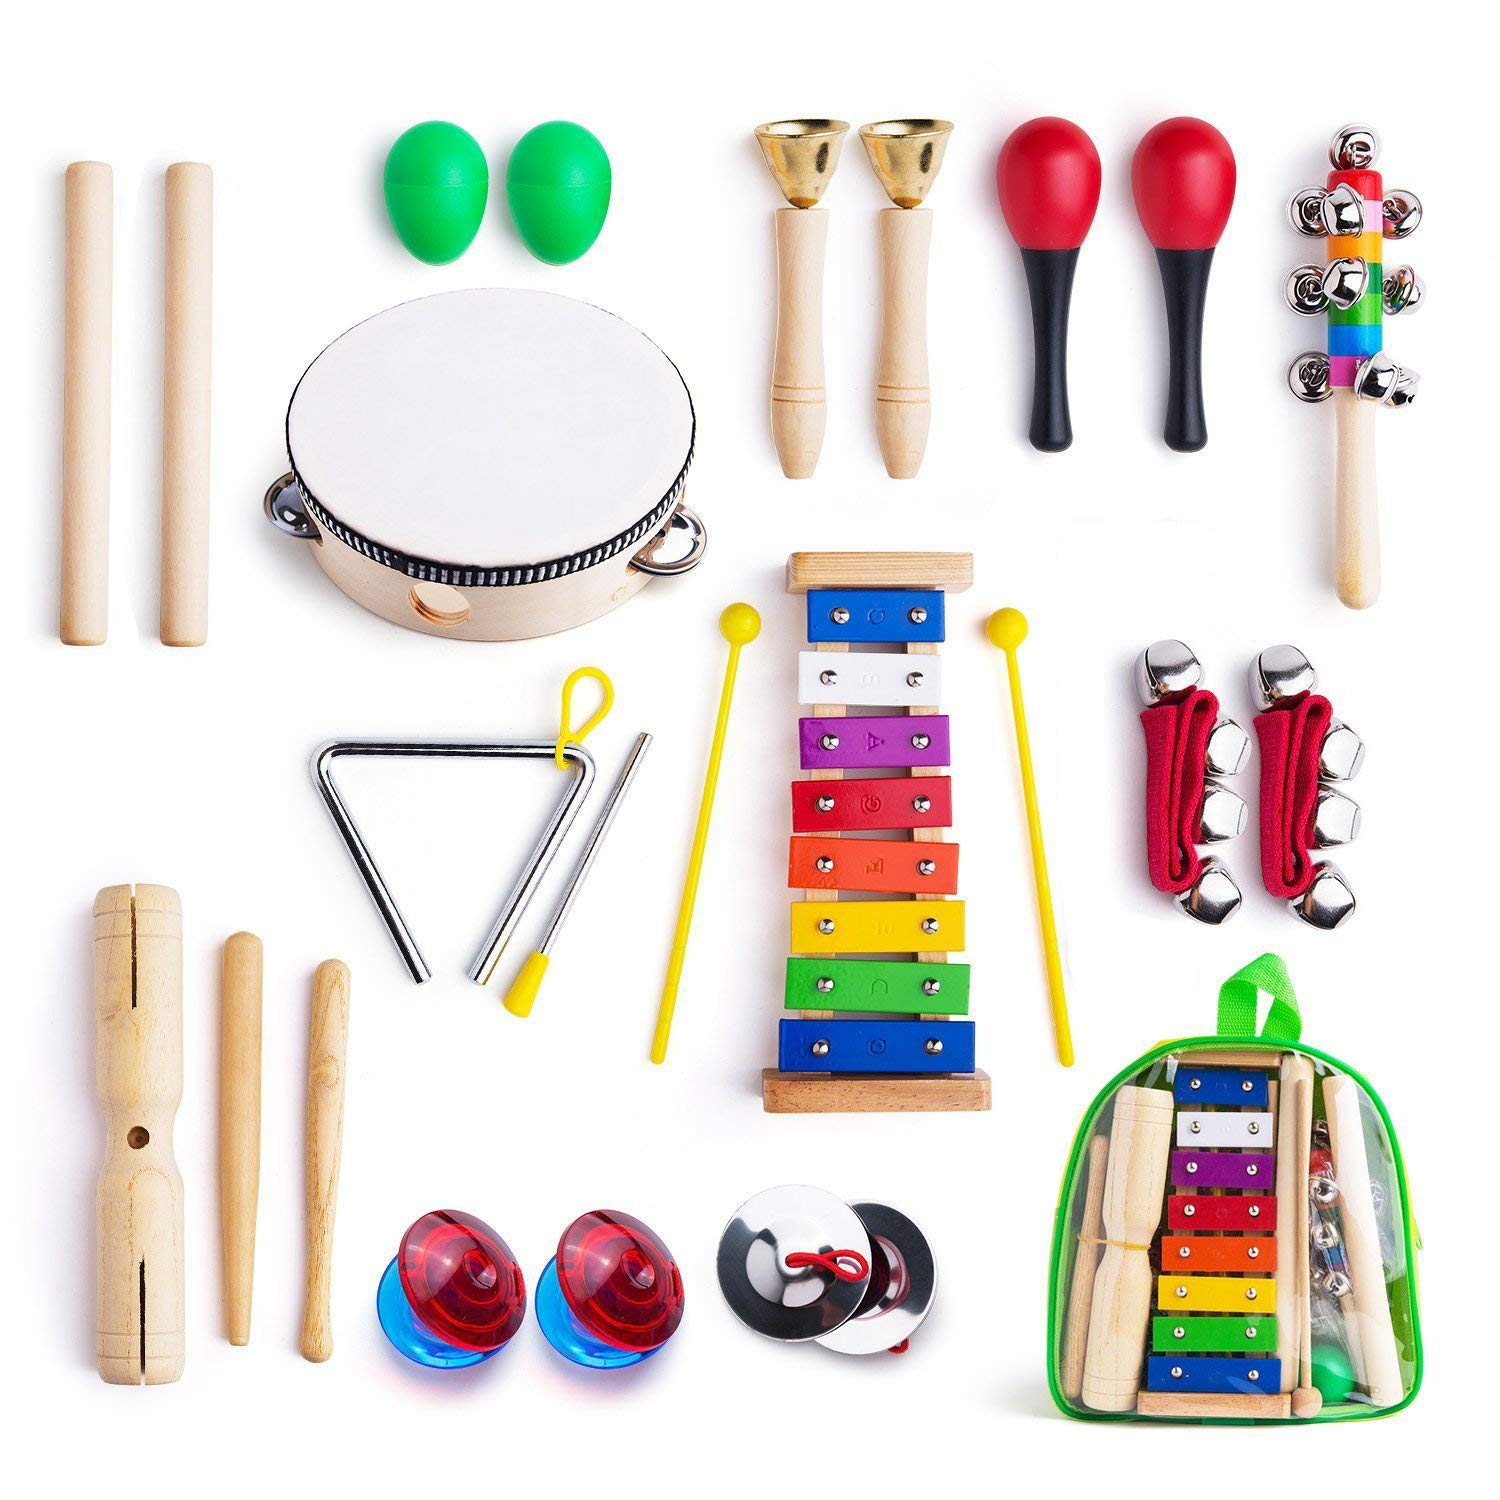 12PCS/SET Wooden Musical Instruments For Toddler With Carry Bag Music Percussion Toy Set For Kids With Xylophone Rhythm Band